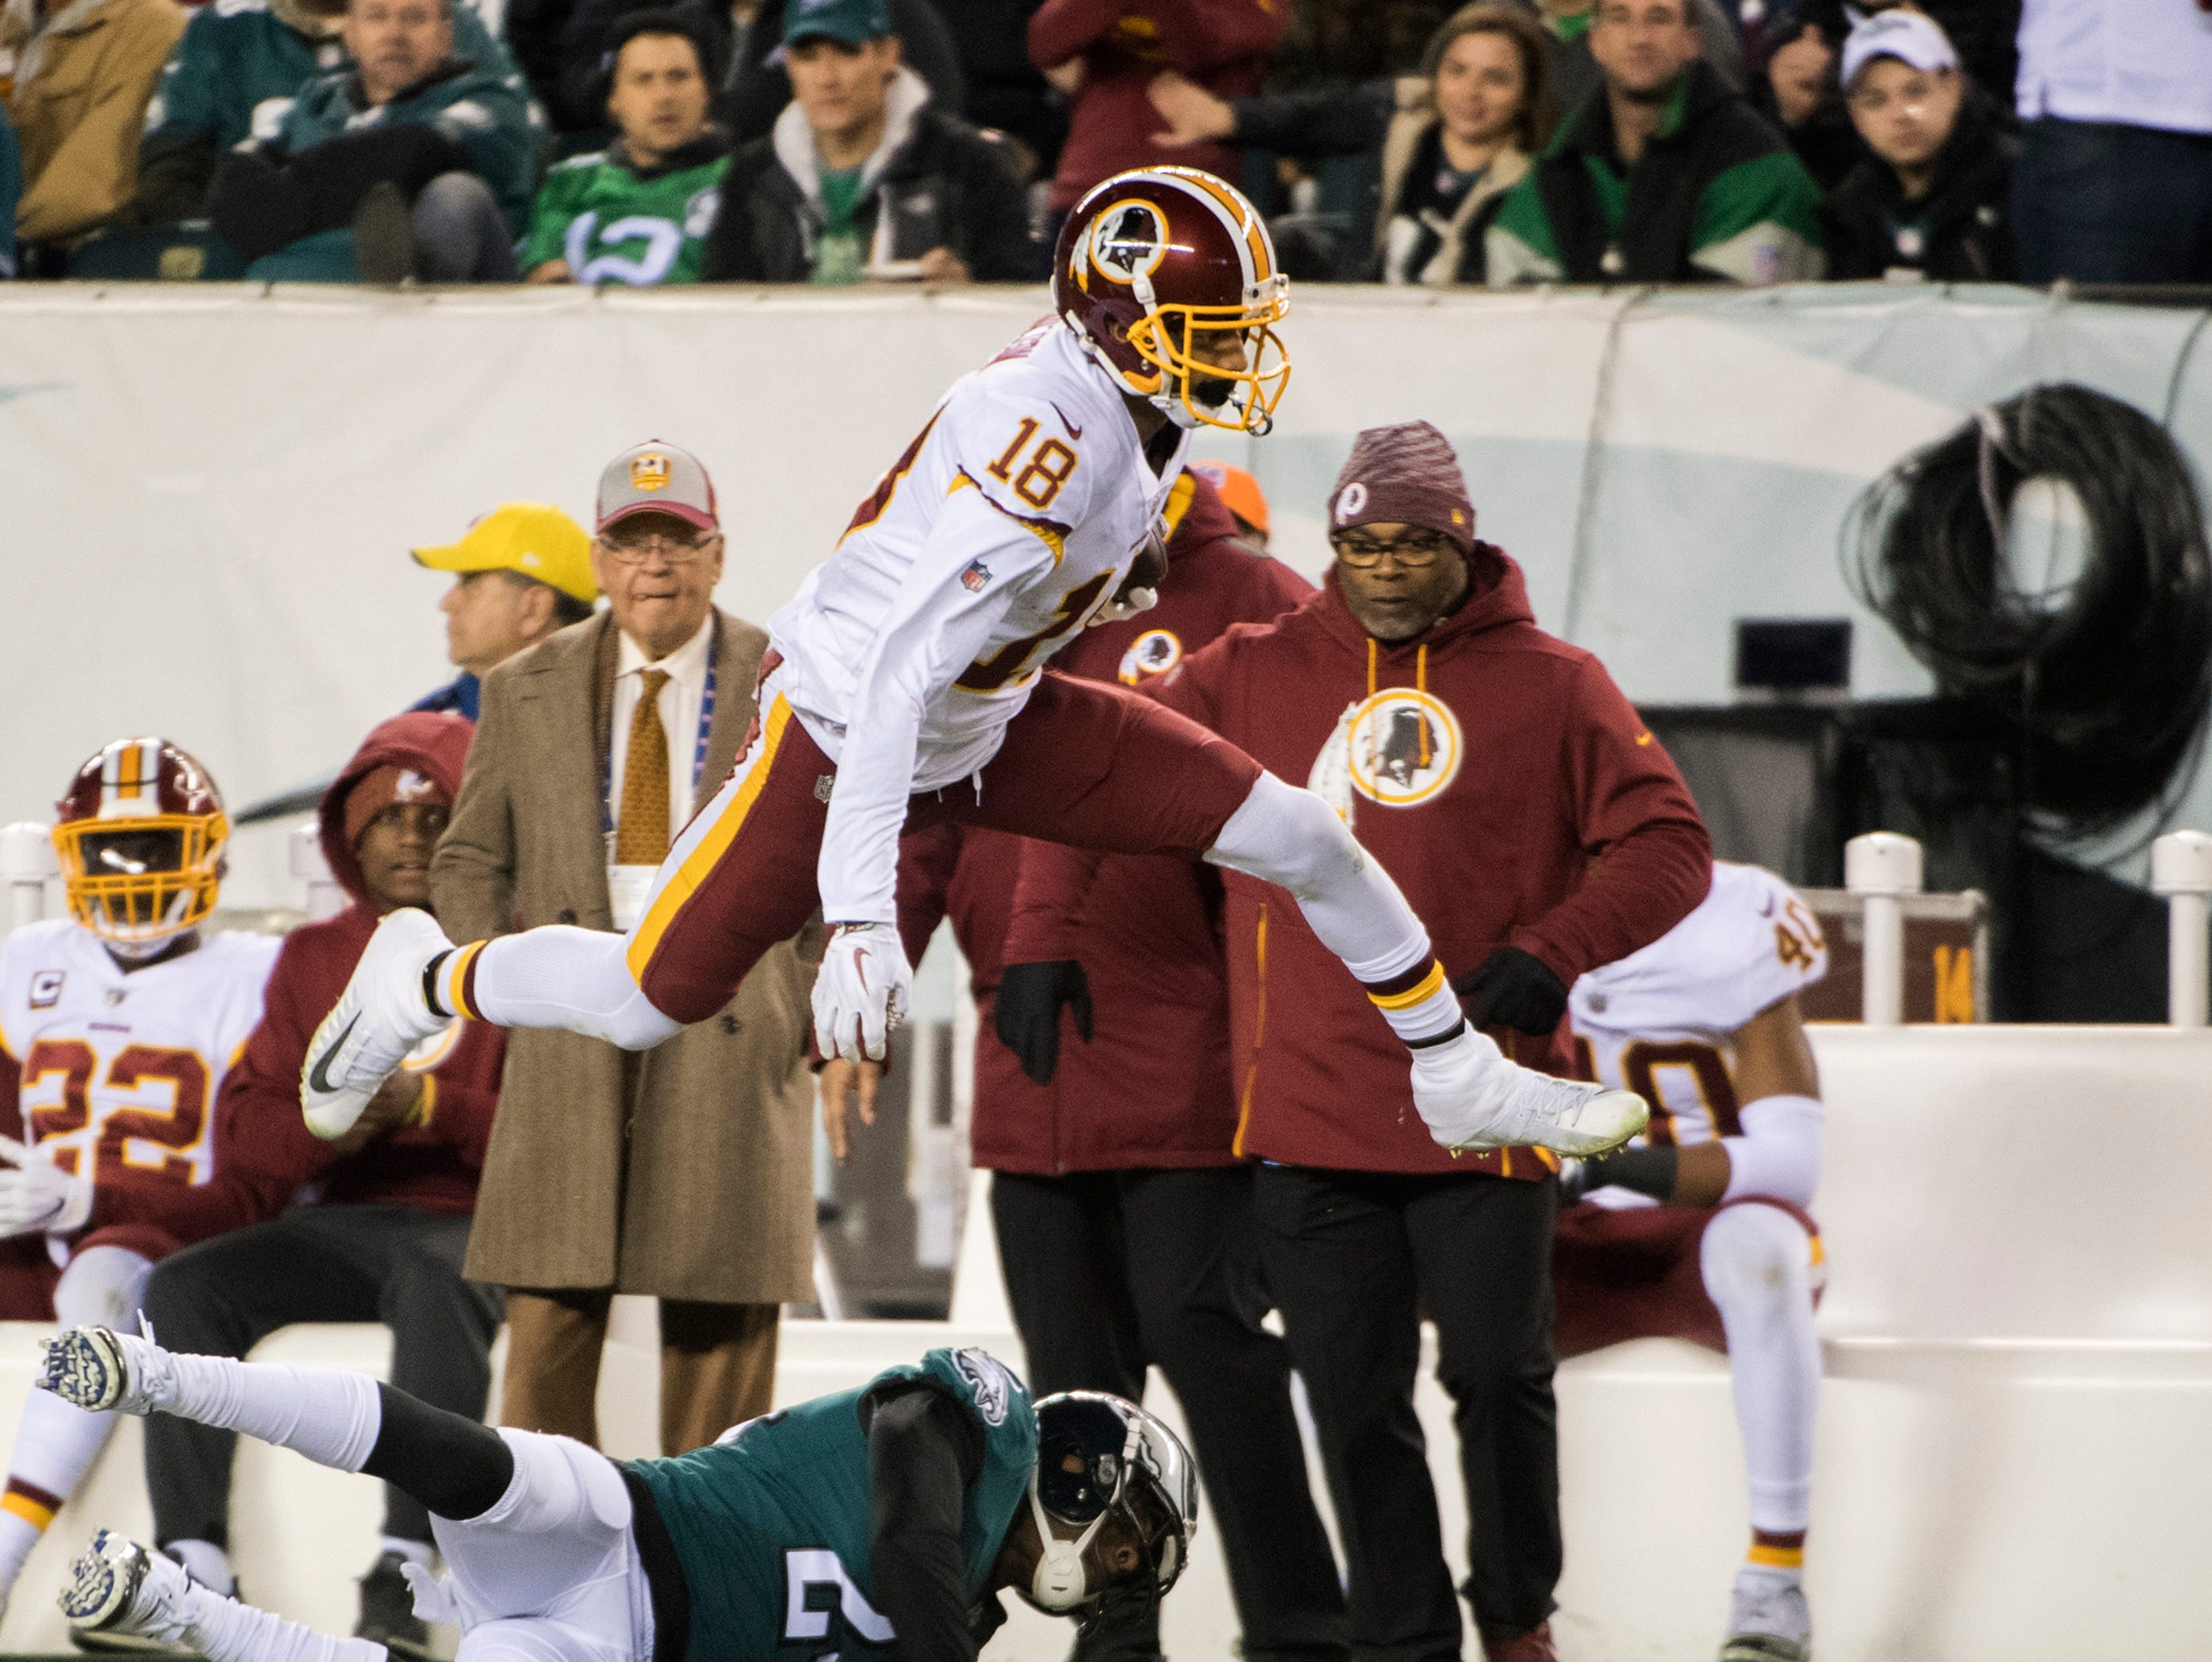 Redskins' Josh Doctson (18) leaps while carrying the ball against the Eagles Monday, Dec. 3, 2018 in Philadelphia. The Eagles won 28-13.